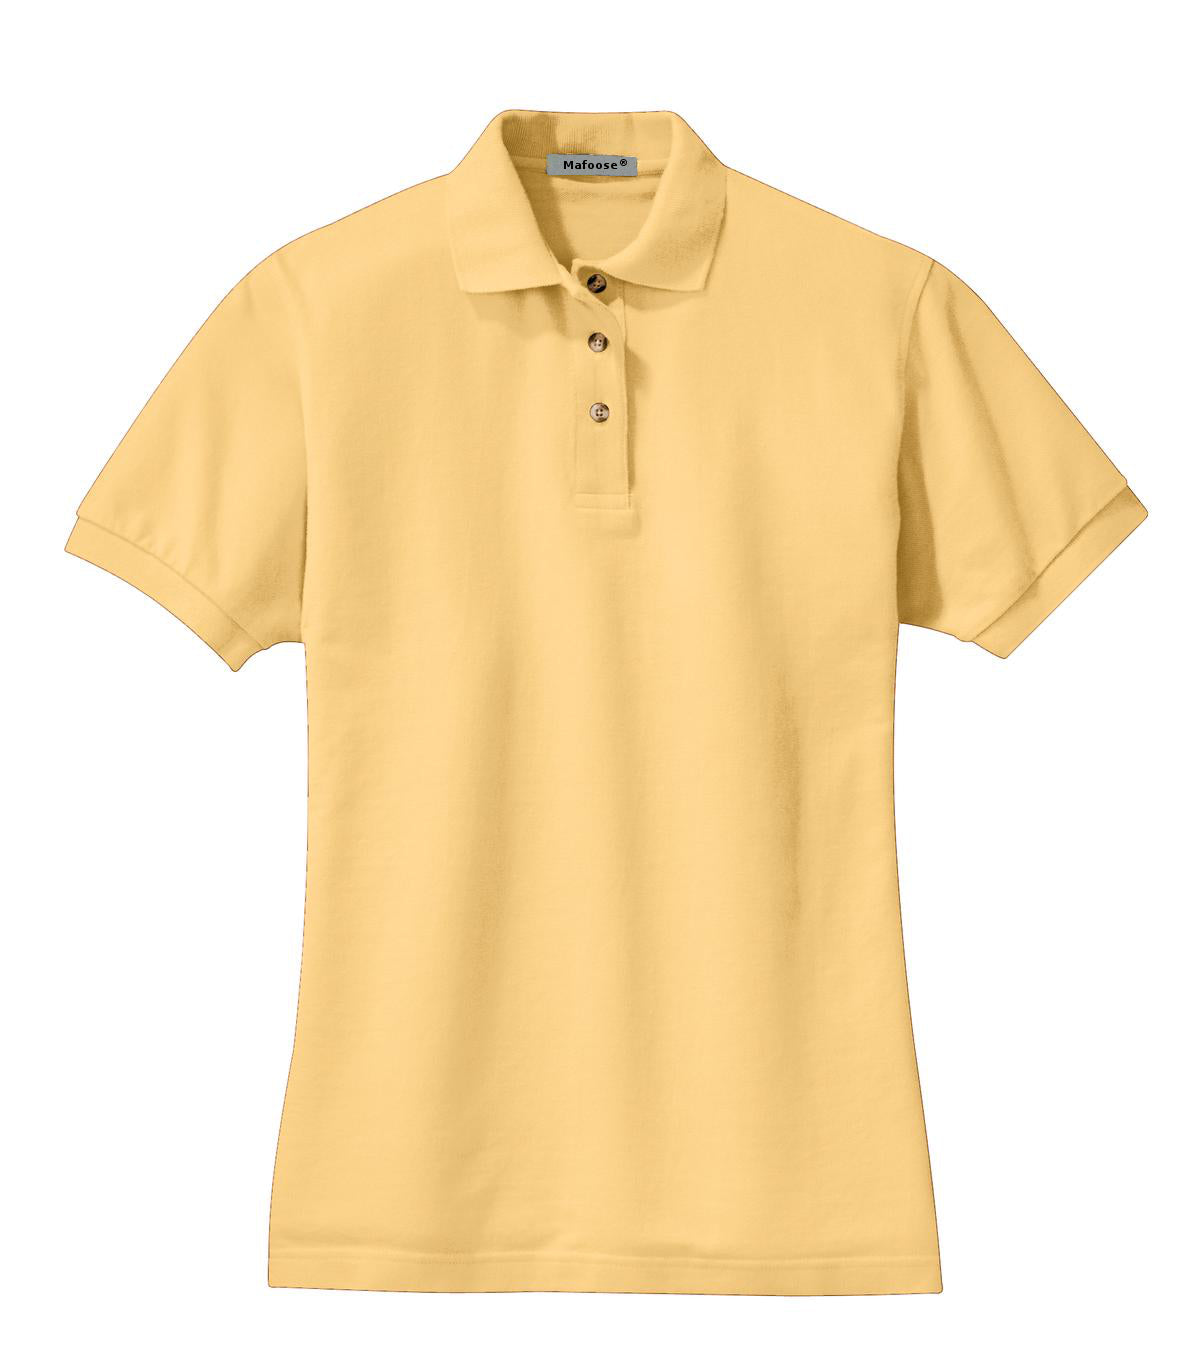 Mafoose Women's Heavyweight Cotton Pique Polo Shirt Yellow-Front